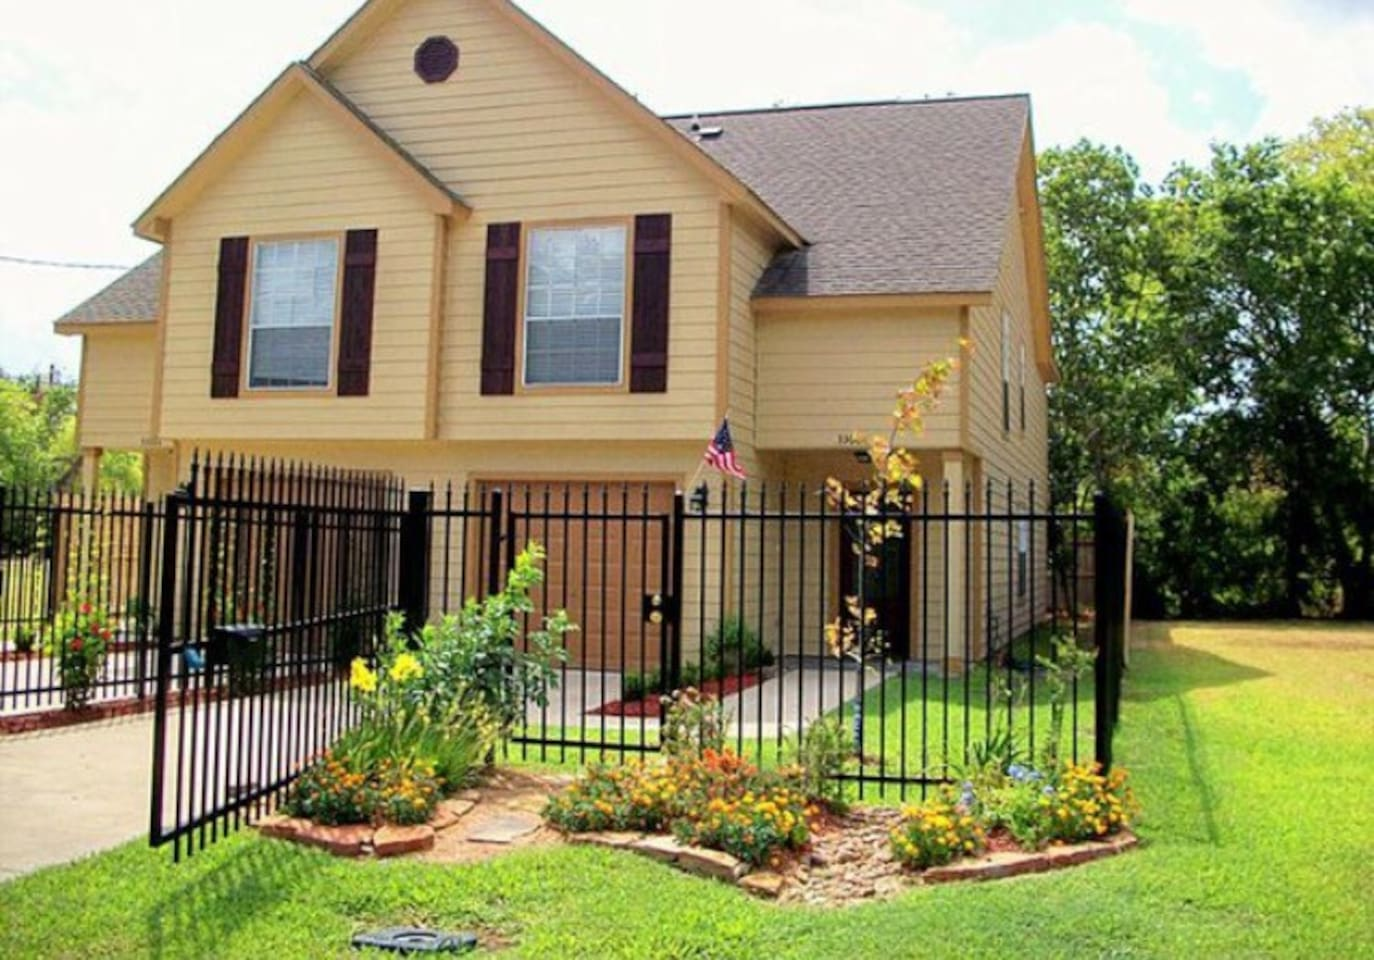 Outside of the home. Has attached garage and parking space inside automatic gate.